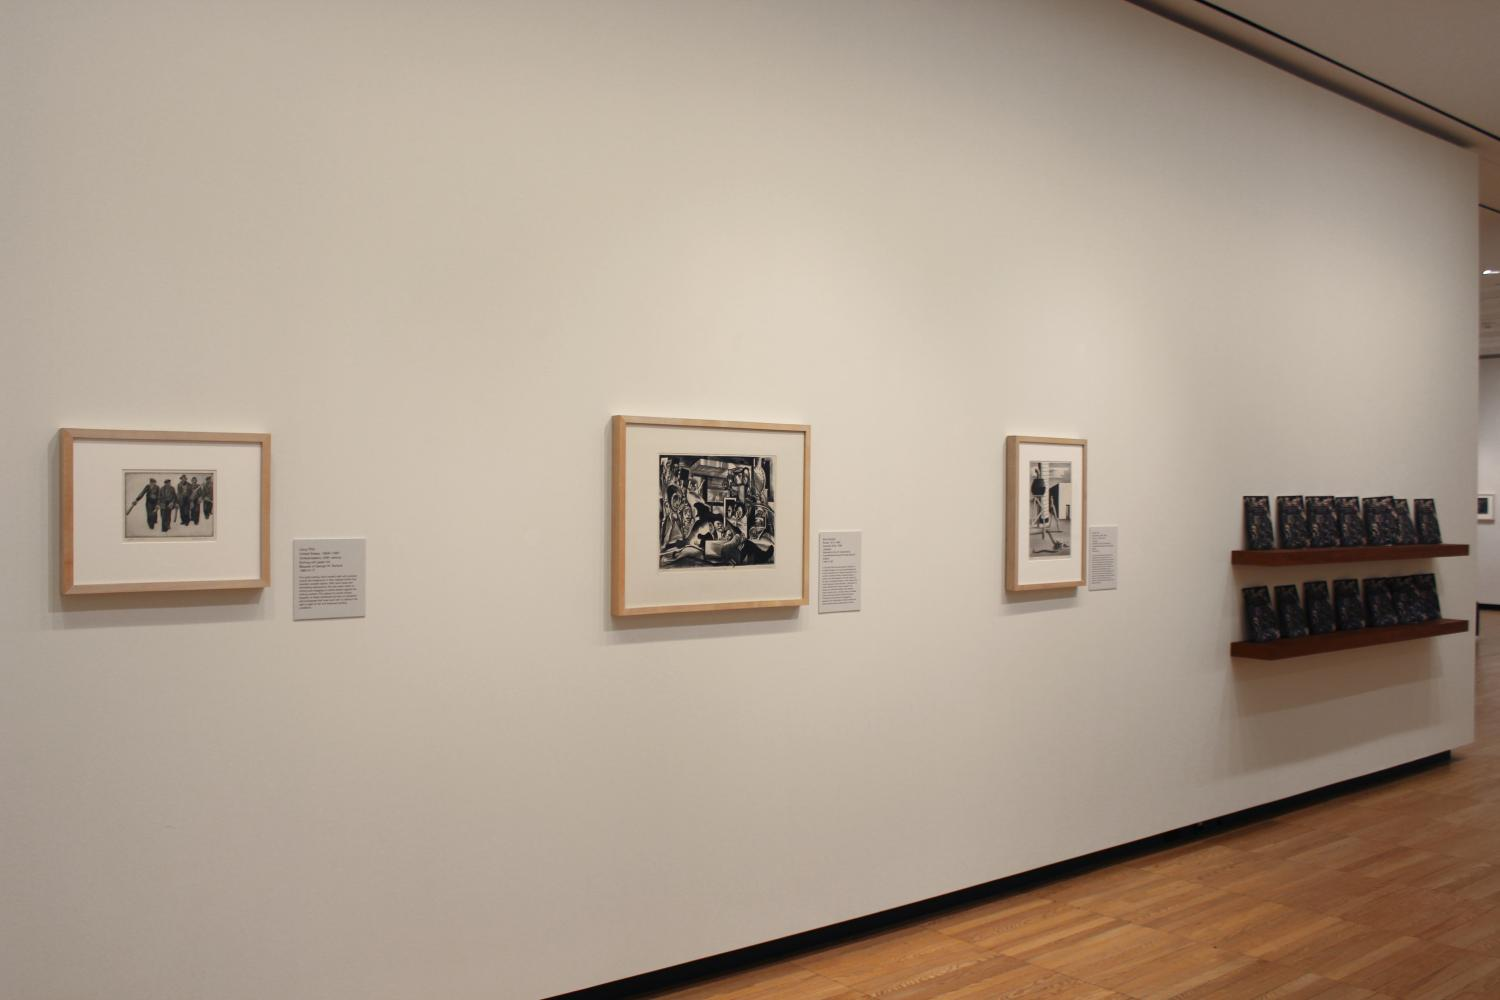 Gallery view of three black and white prints hung on a wall. To the right of the image are several shelves with Pressing Issues brochures on them. The shelves are made of wood and the brochures stand up for visitors to take.